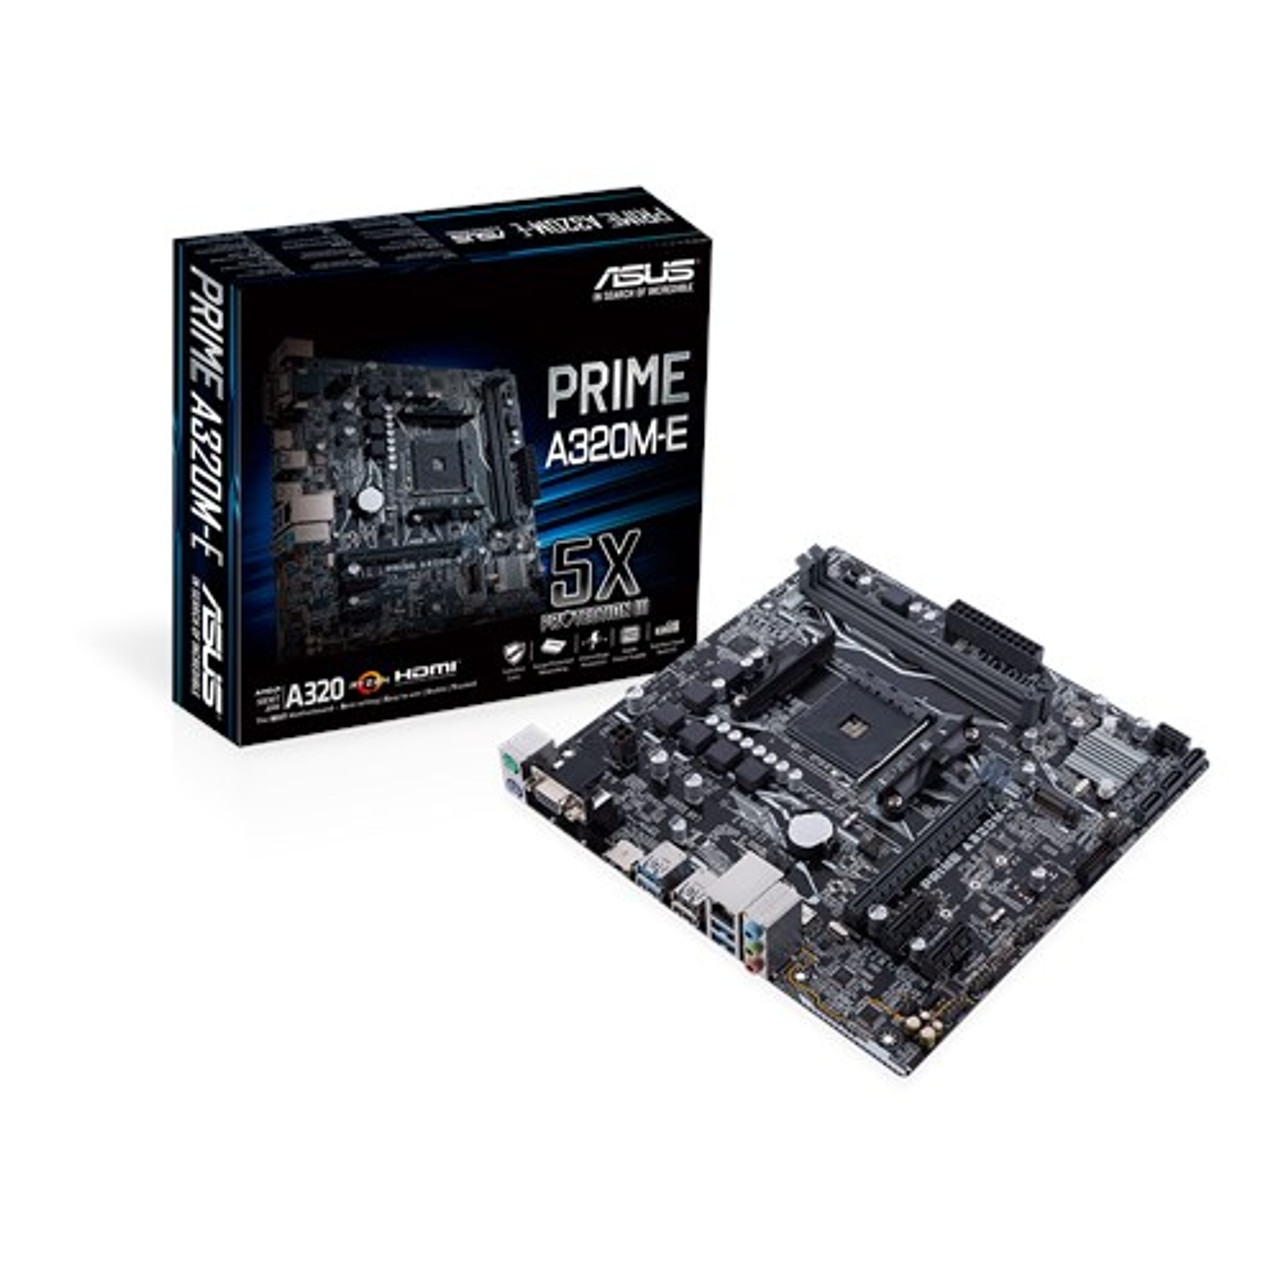 Product image for Asus Prime A320M-E AM4 Micro-ATX Motherboard | CX Computer Superstore